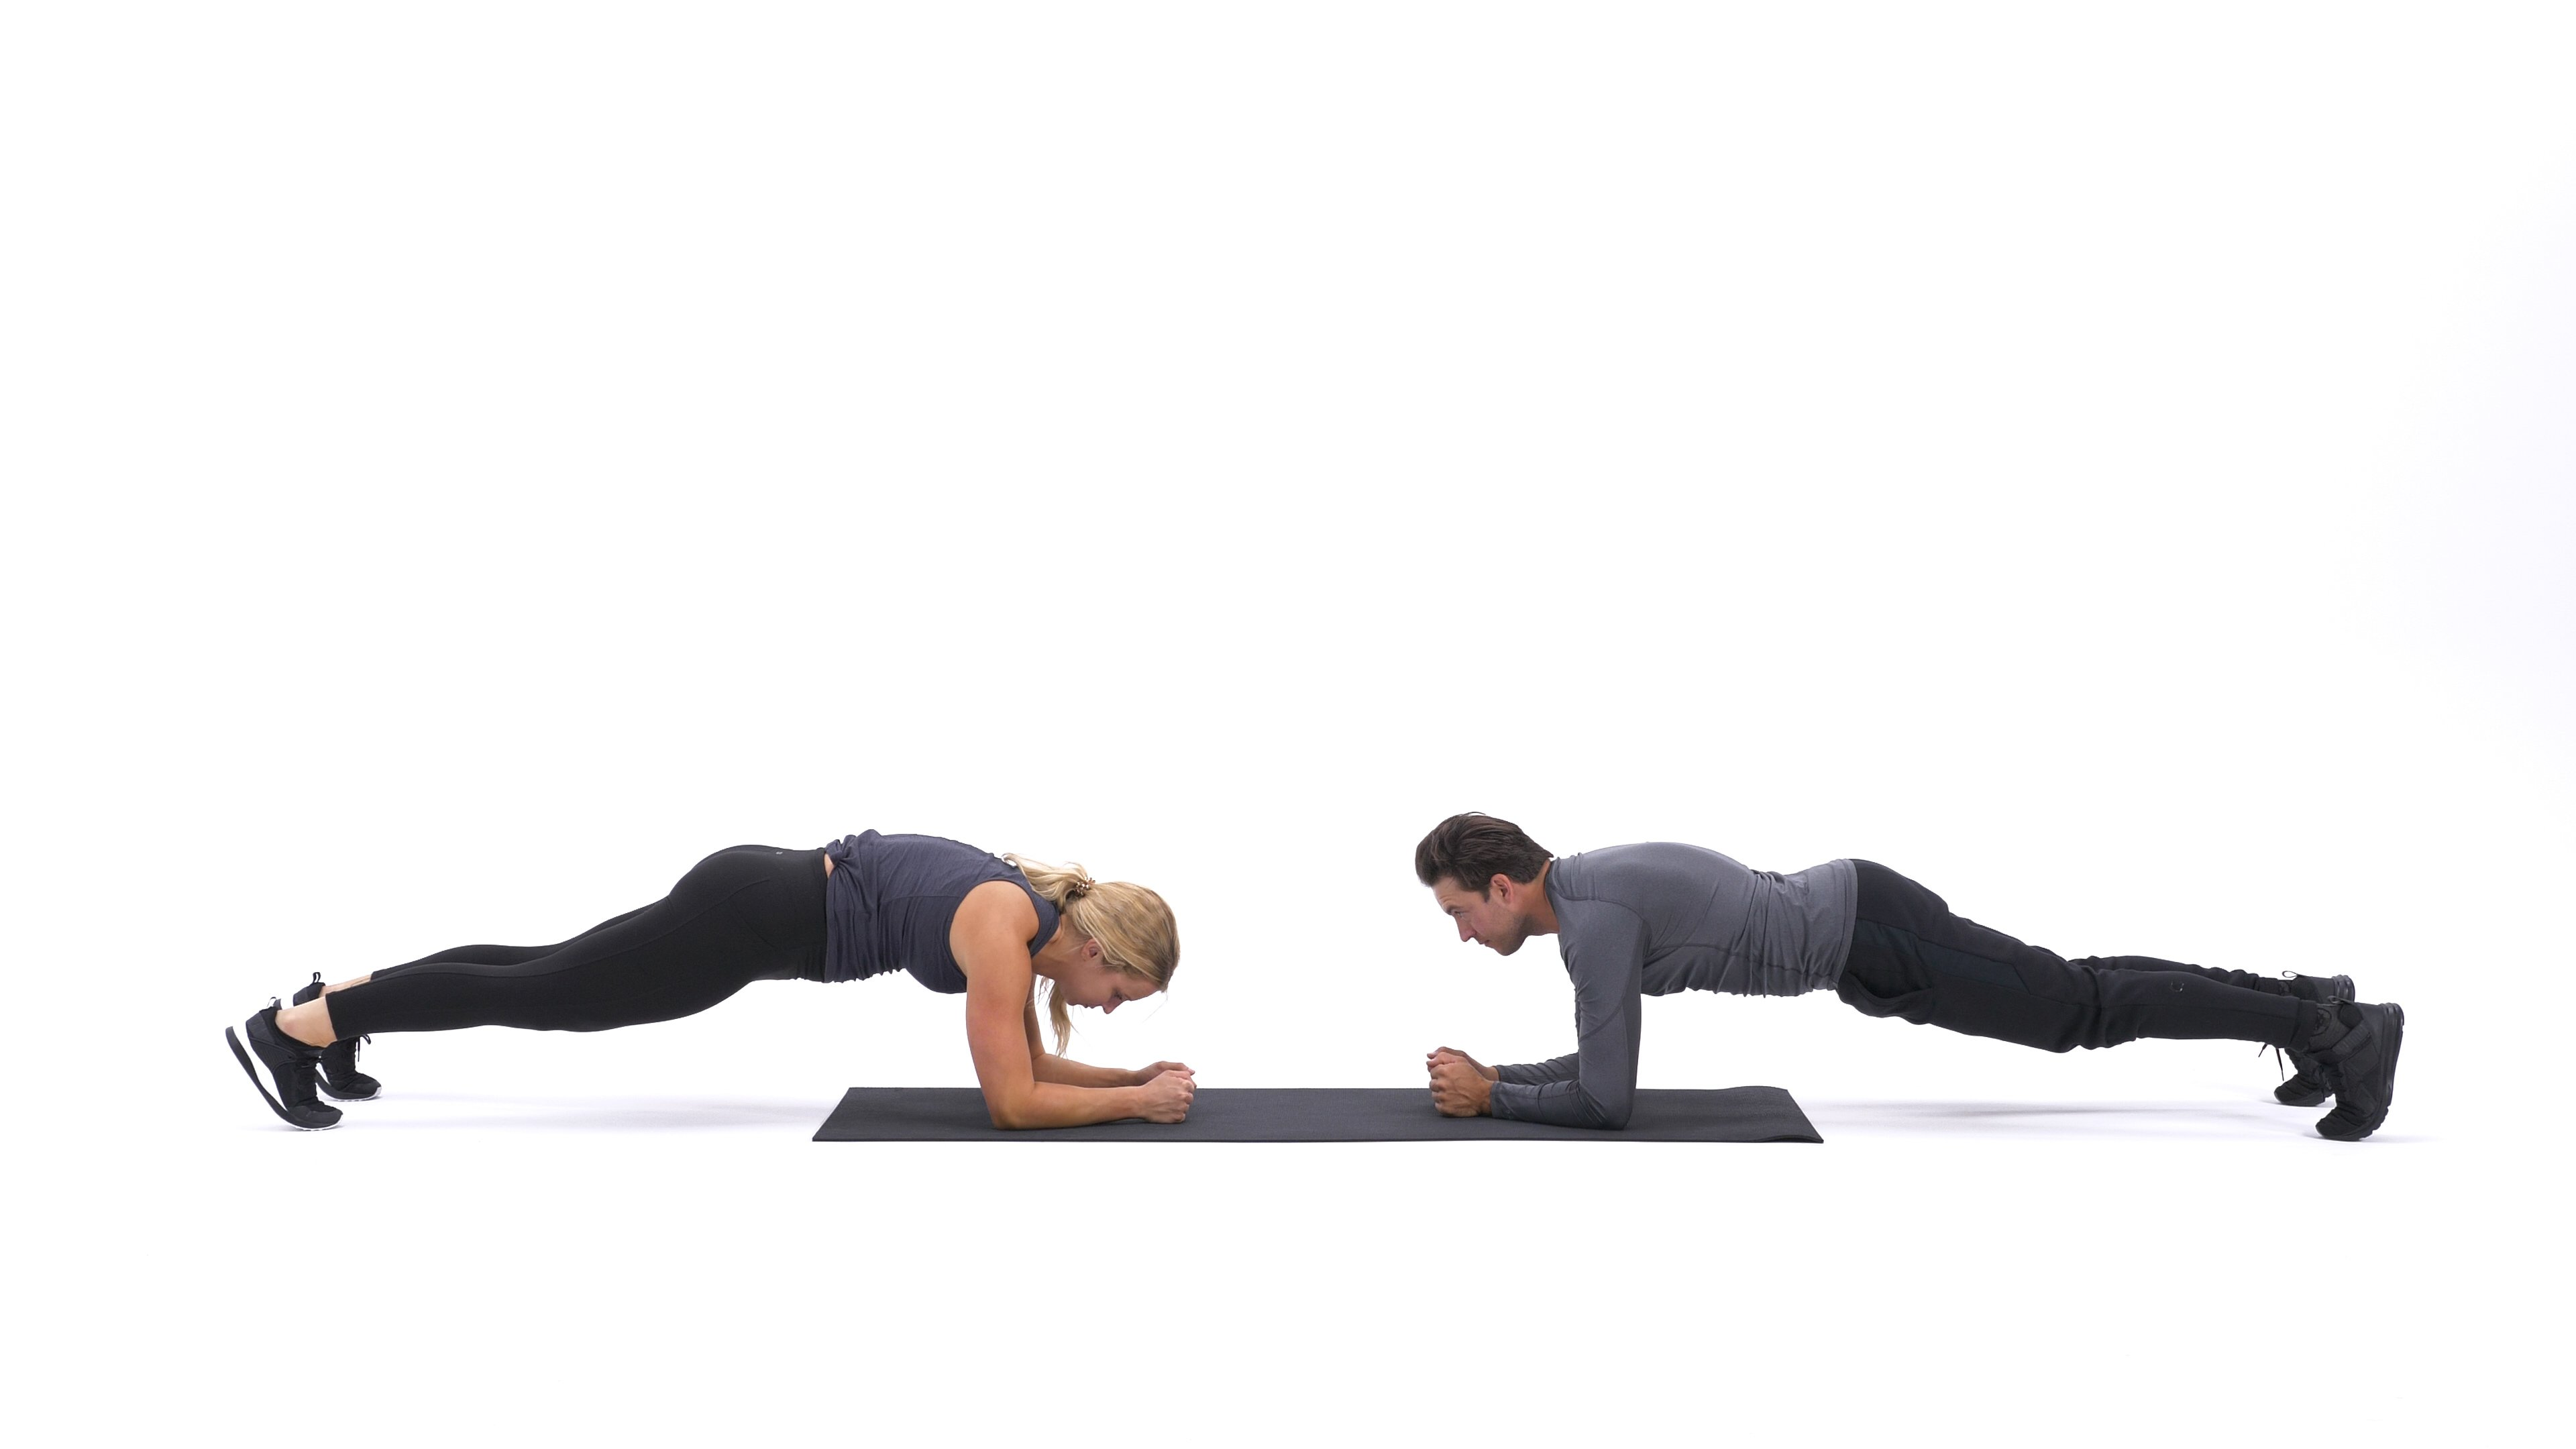 Partner Facing Planks With Alternating High-Five image